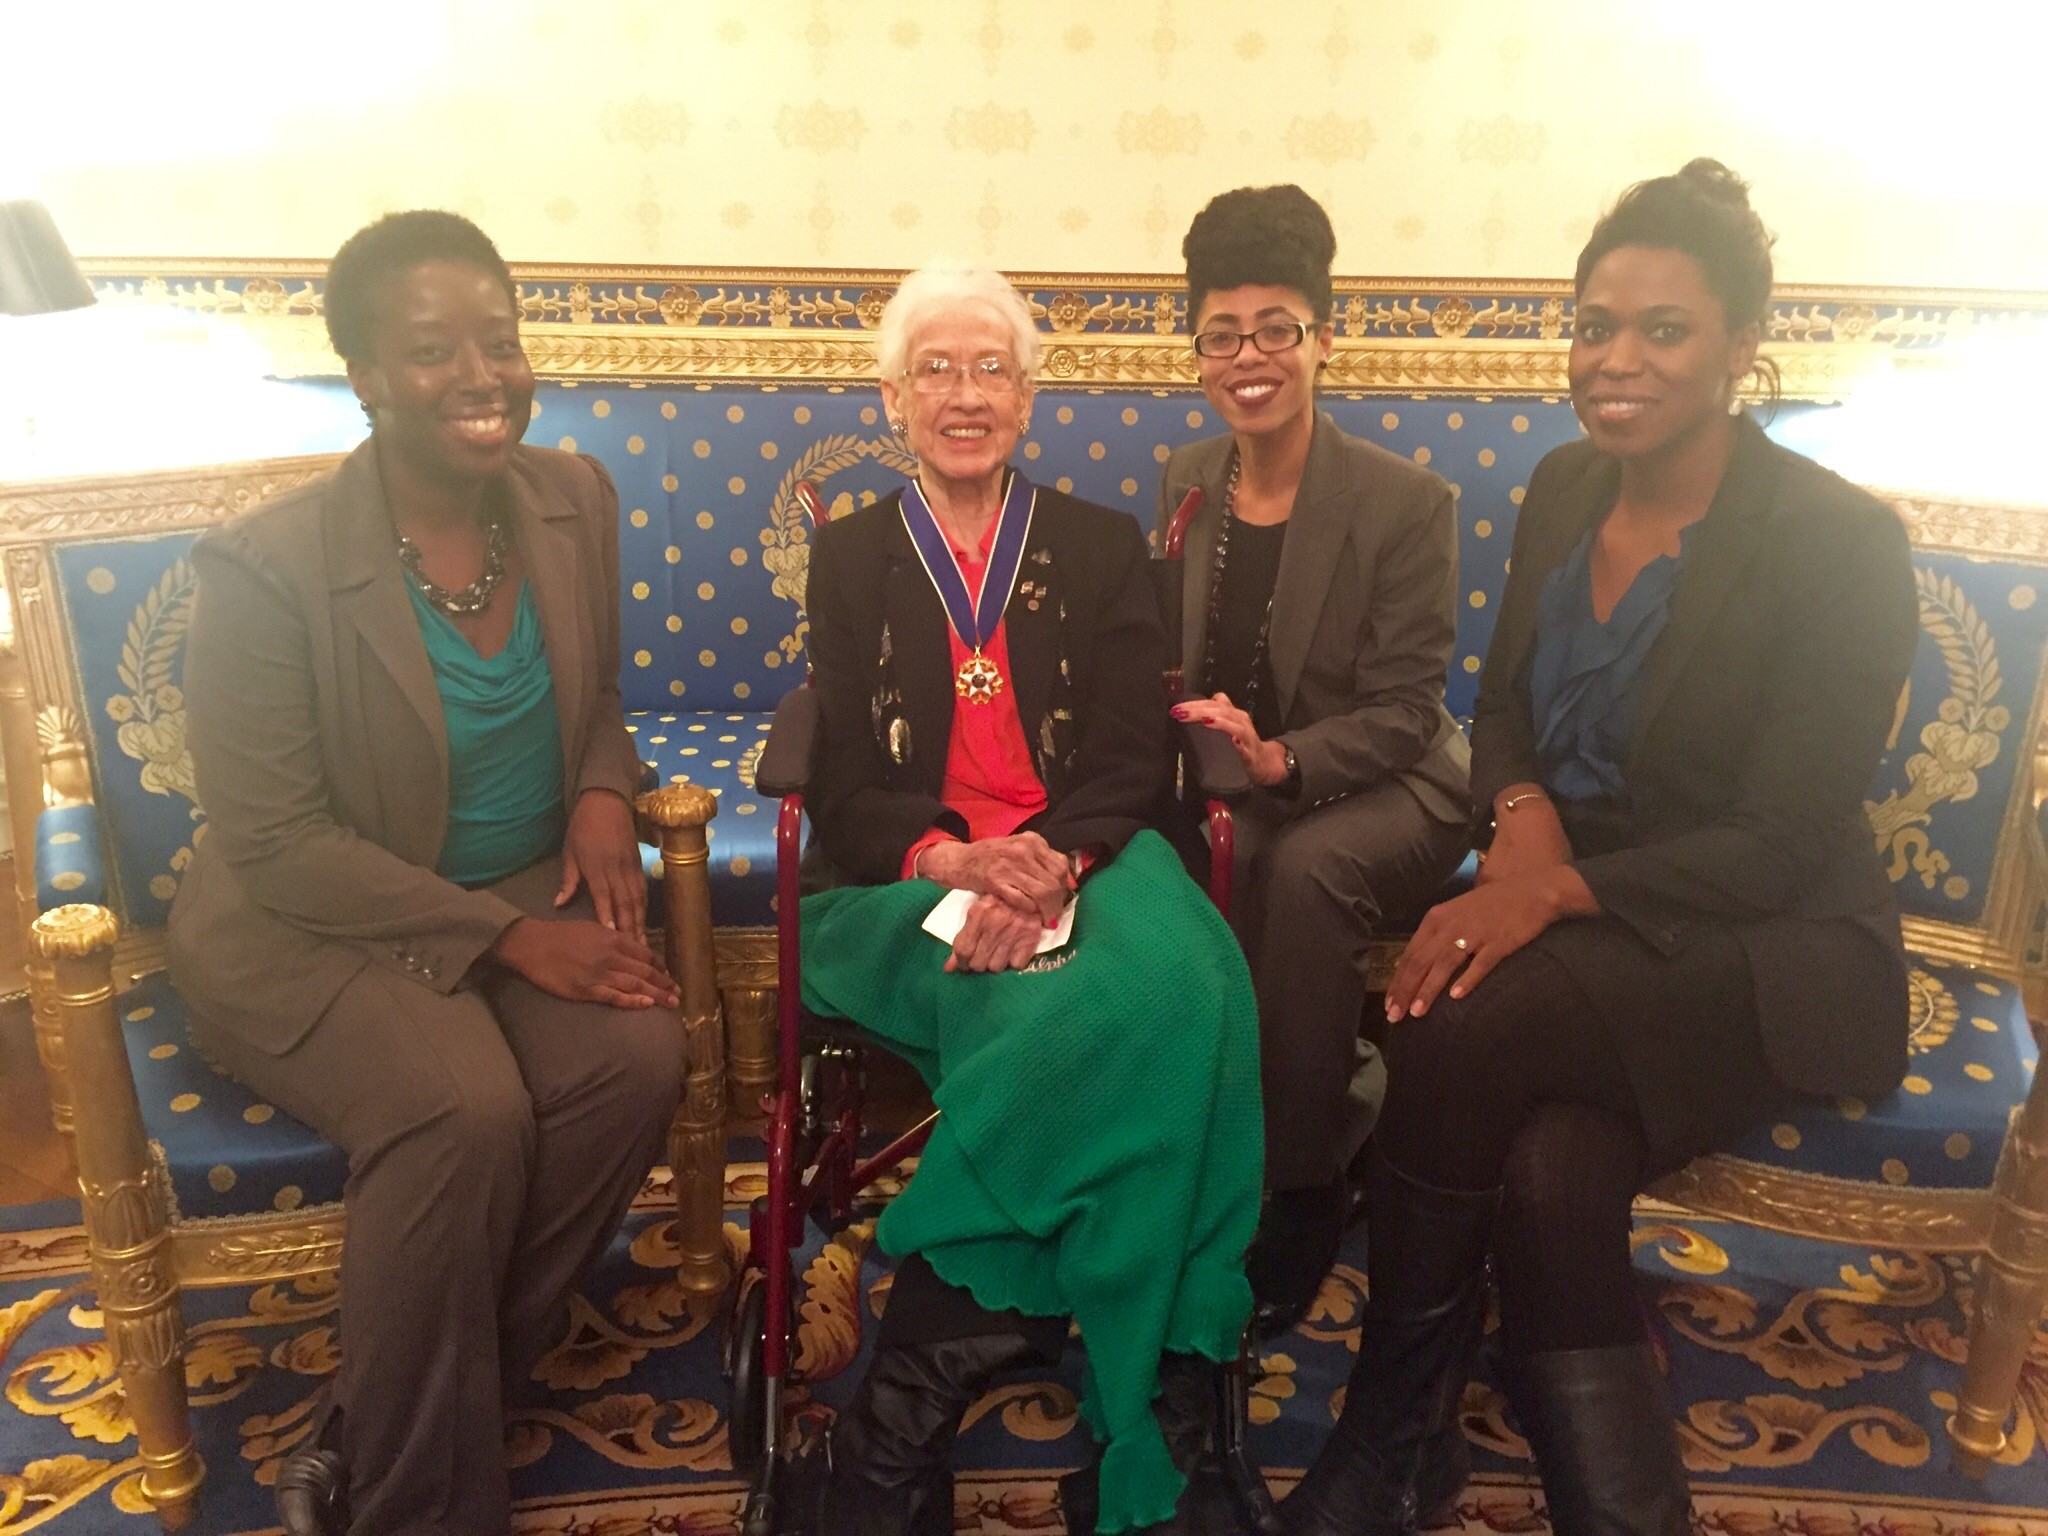 White House Office of Science and Technology staffers meet with Medal of Freedom recipient Katherine Johnson.